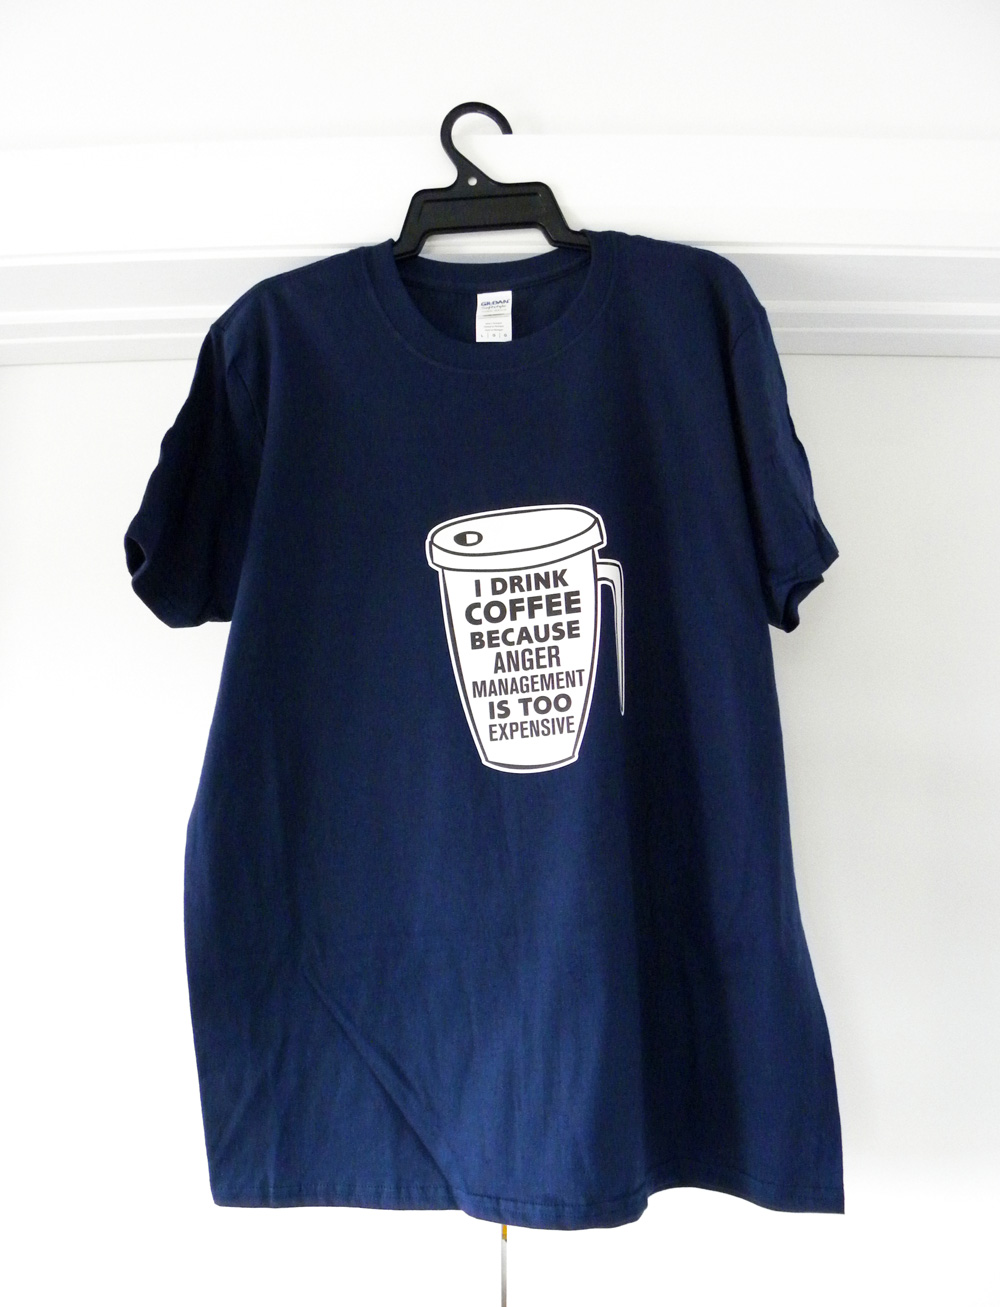 tshirt designs, coffee